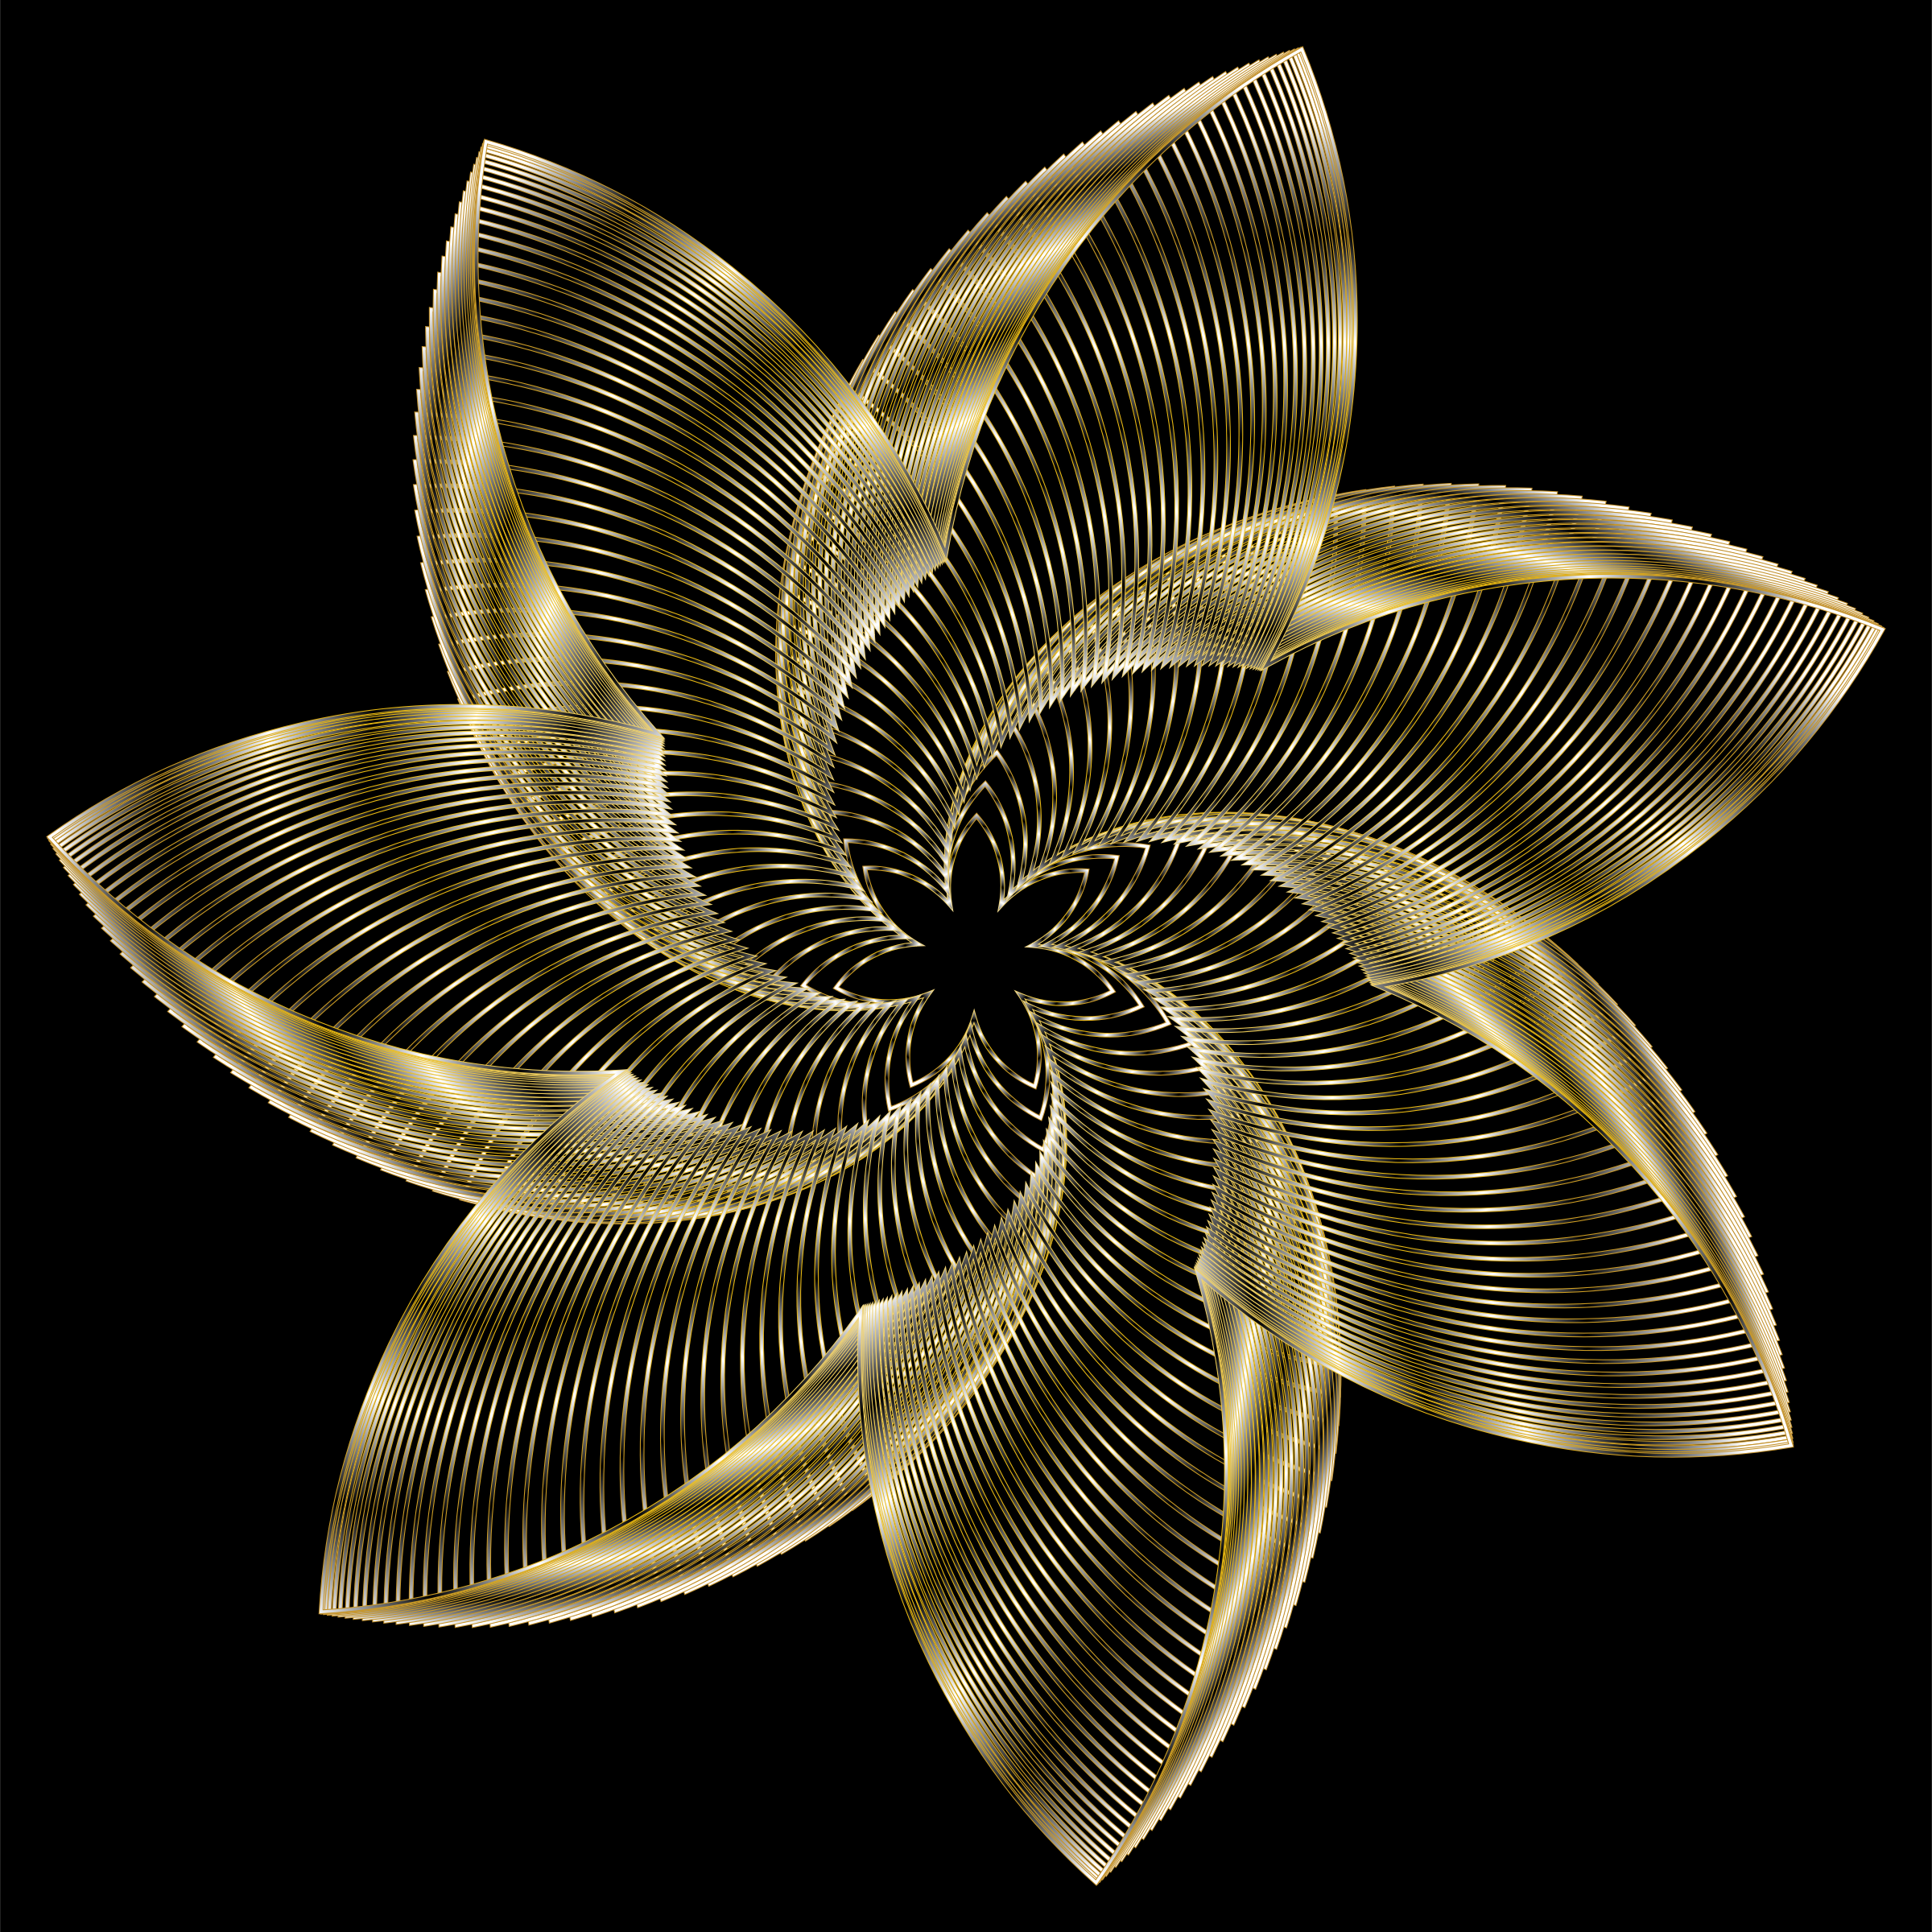 Prismatic Flower Line Art 10 by GDJ